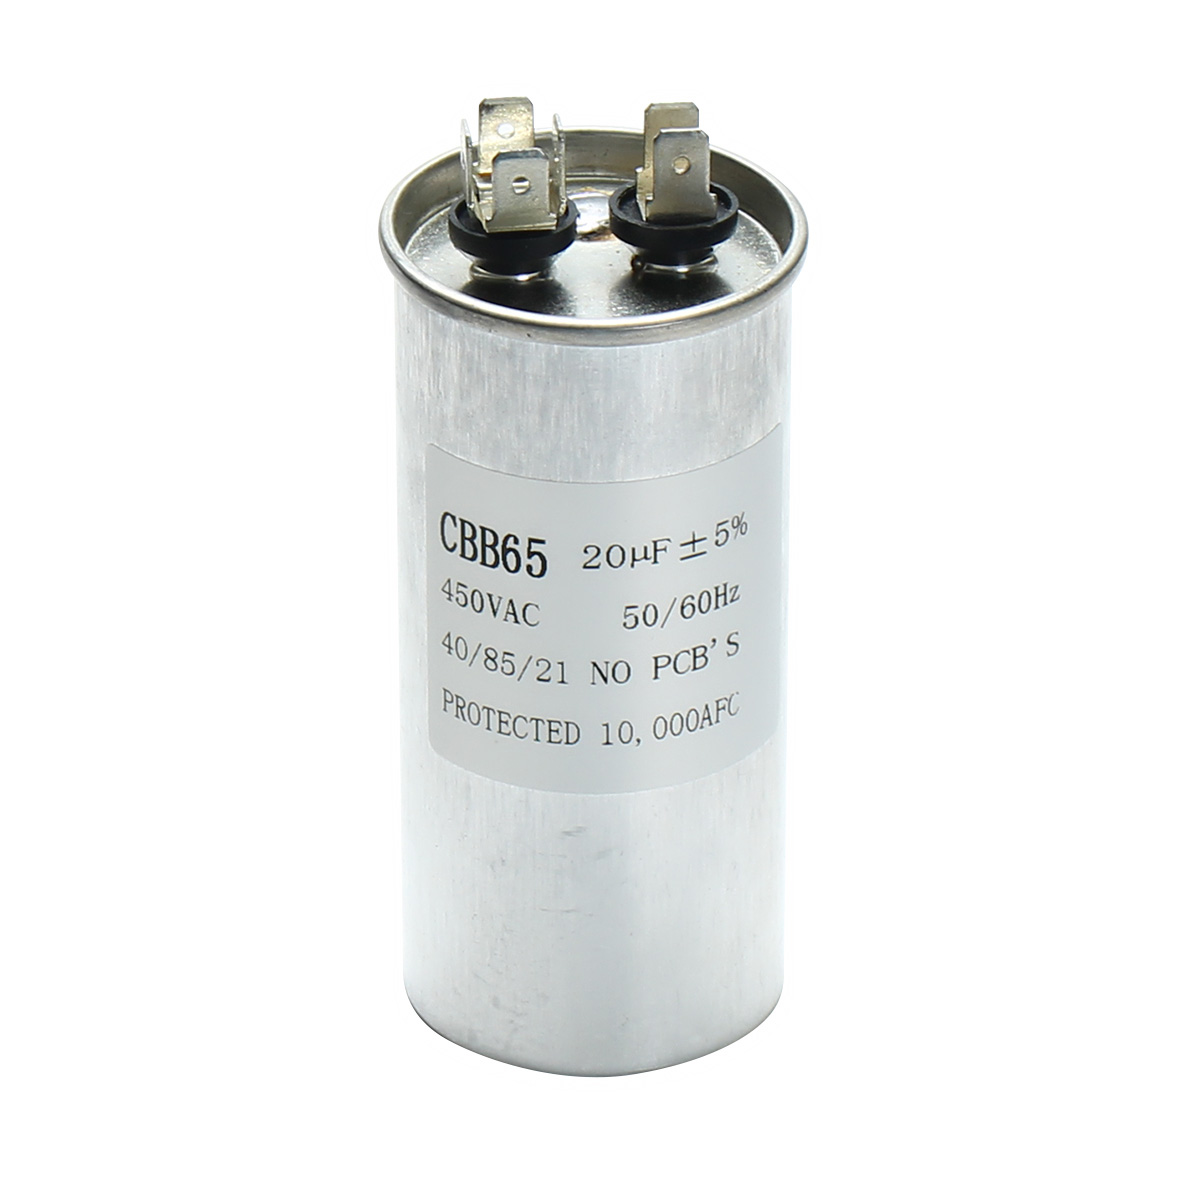 15 50uf motor capacitor cbb65 450vac air conditioner for Air conditioner compressor motor